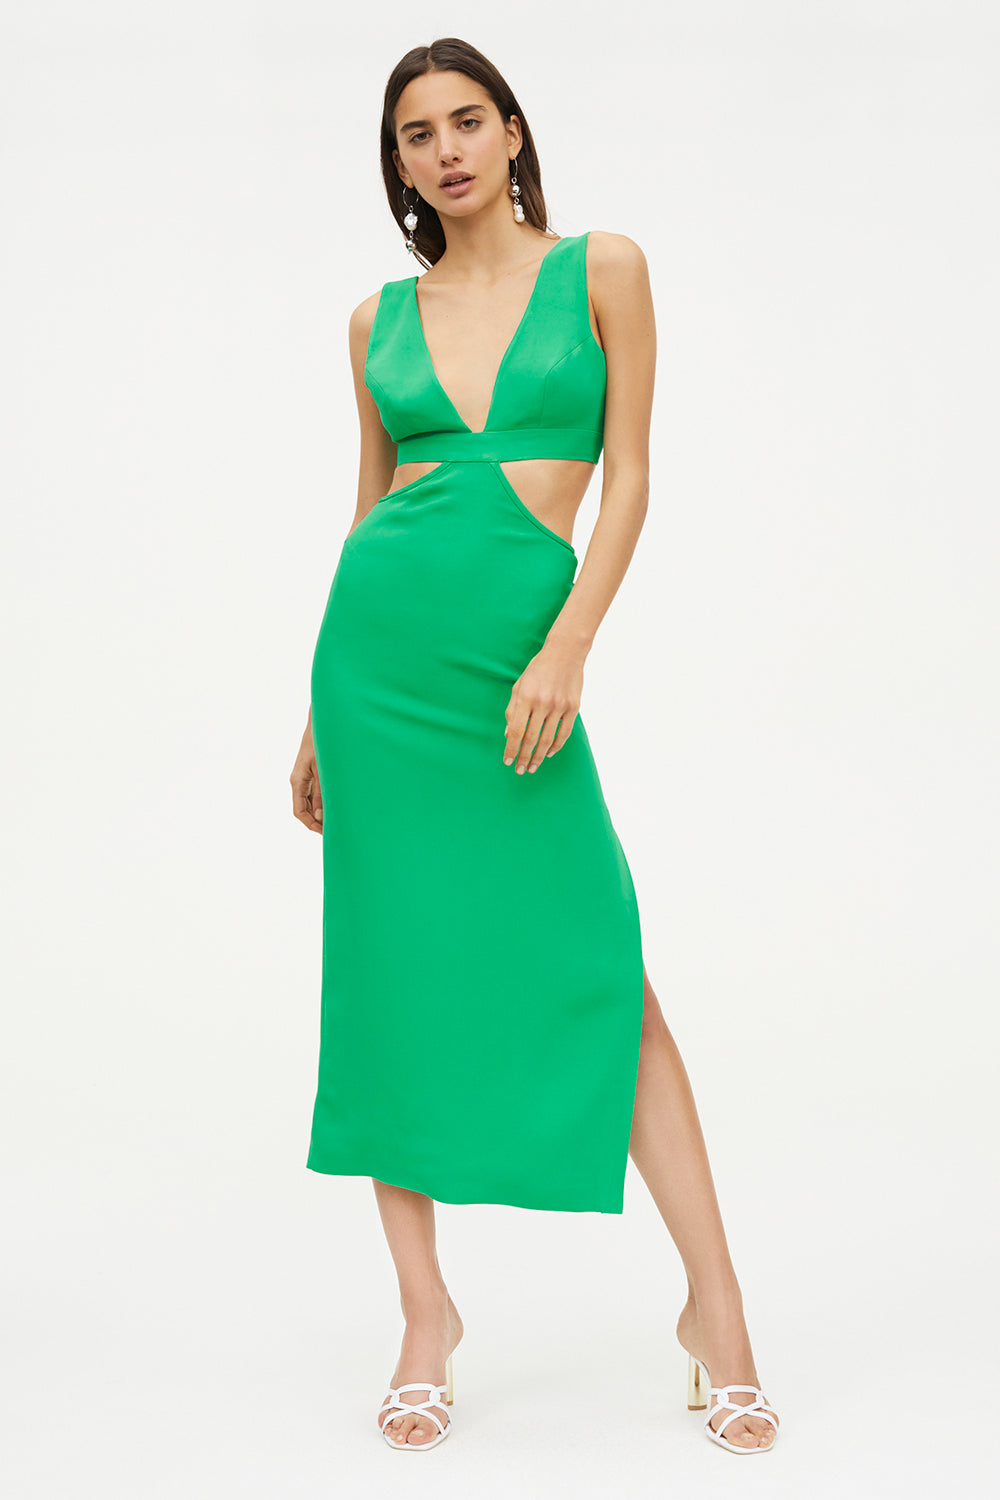 FORBIDDEN FRUIT MIDI DRESS